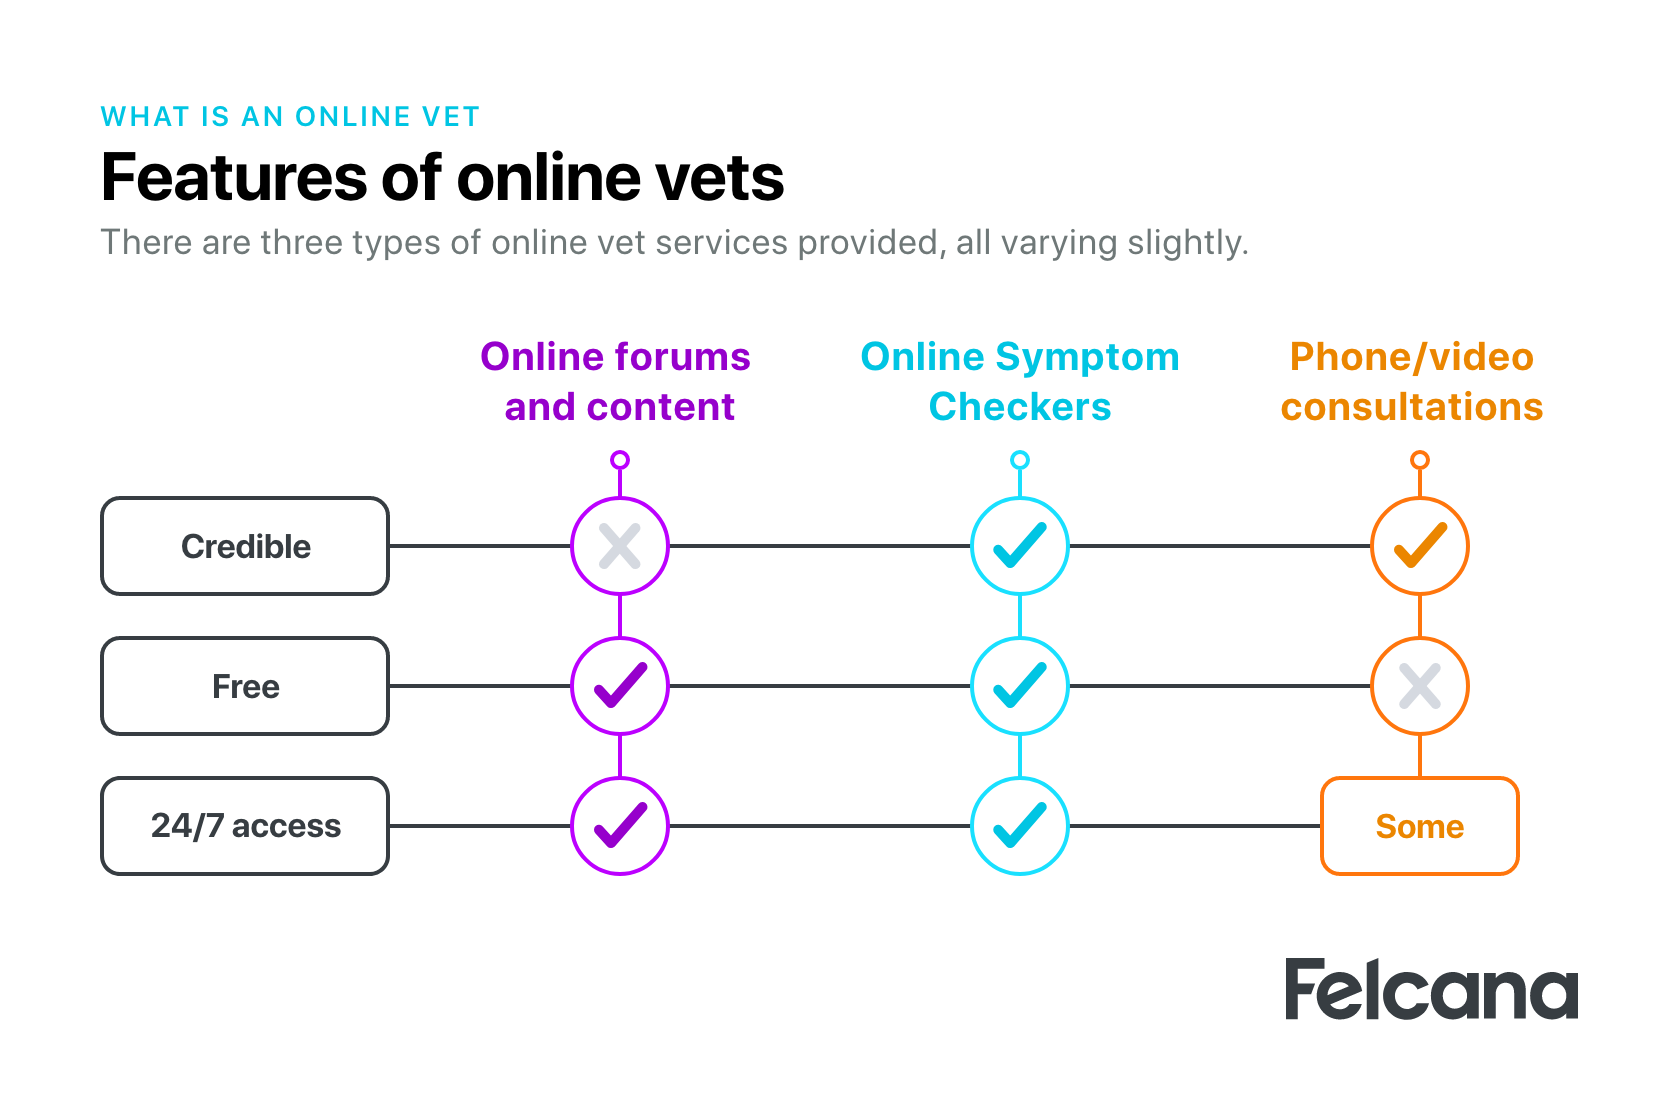 Features of 3 different types of online vets (online forums and content, online symptom checkers and phone/video consultations) and how they vary